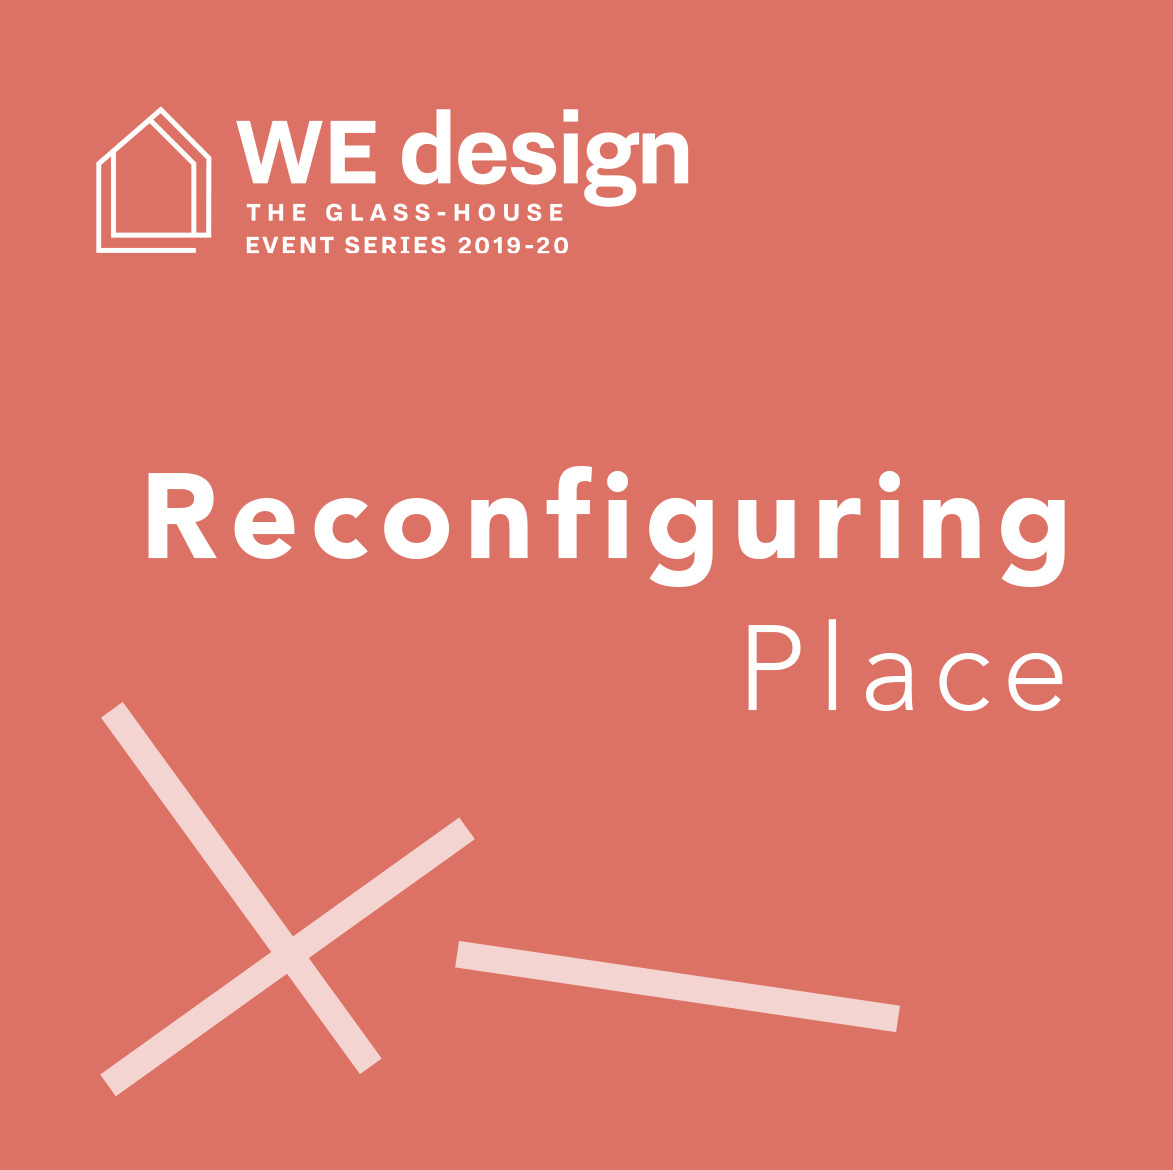 Reconfiguring Place: Voices of The Glass-House 2019/20 Event Series